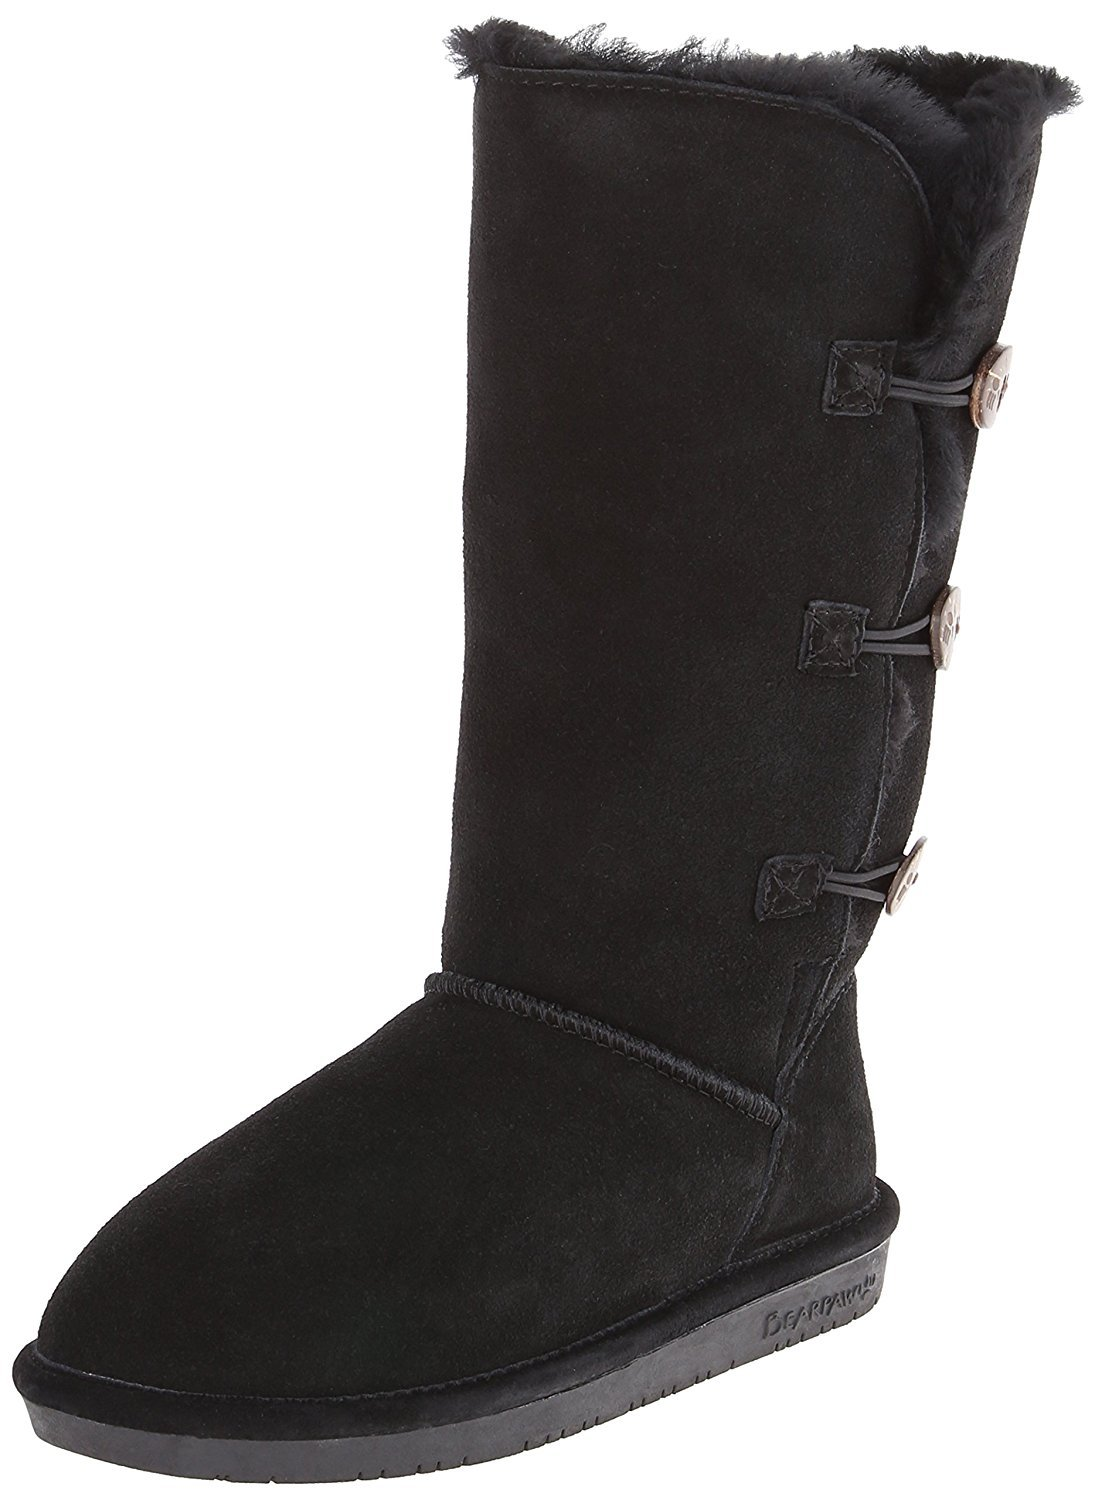 BEARPAW Women's Lauren Winter Boot B078WFWL66 9 B(M) US|Black.